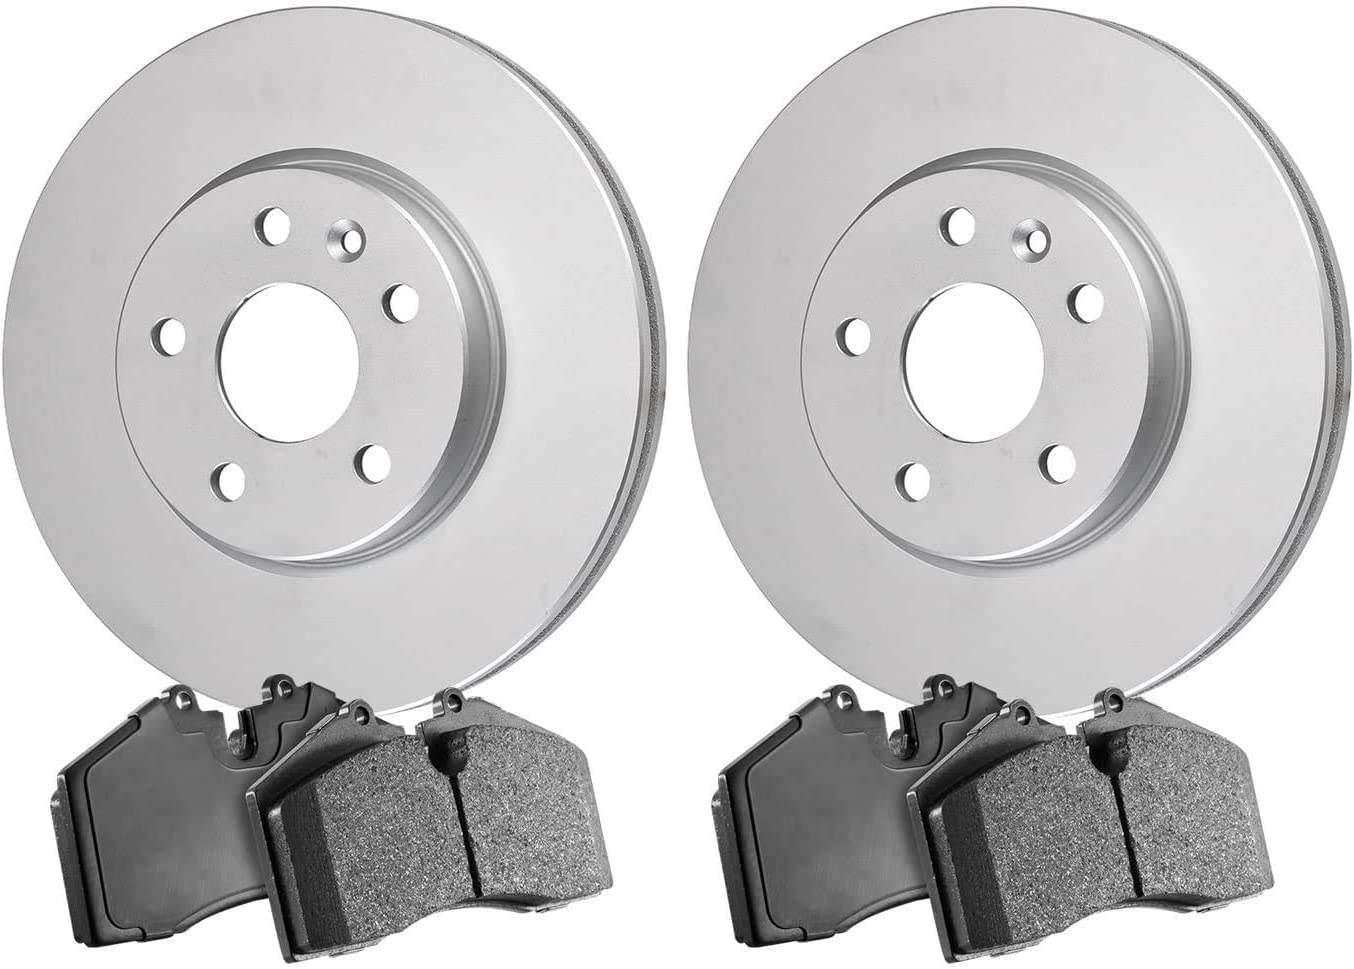 2016 For GMC Sierra 1500 Front Cross Drilled Slotted and Anti Rust Coated Disc Brake Rotors and Ceramic Brake Pads